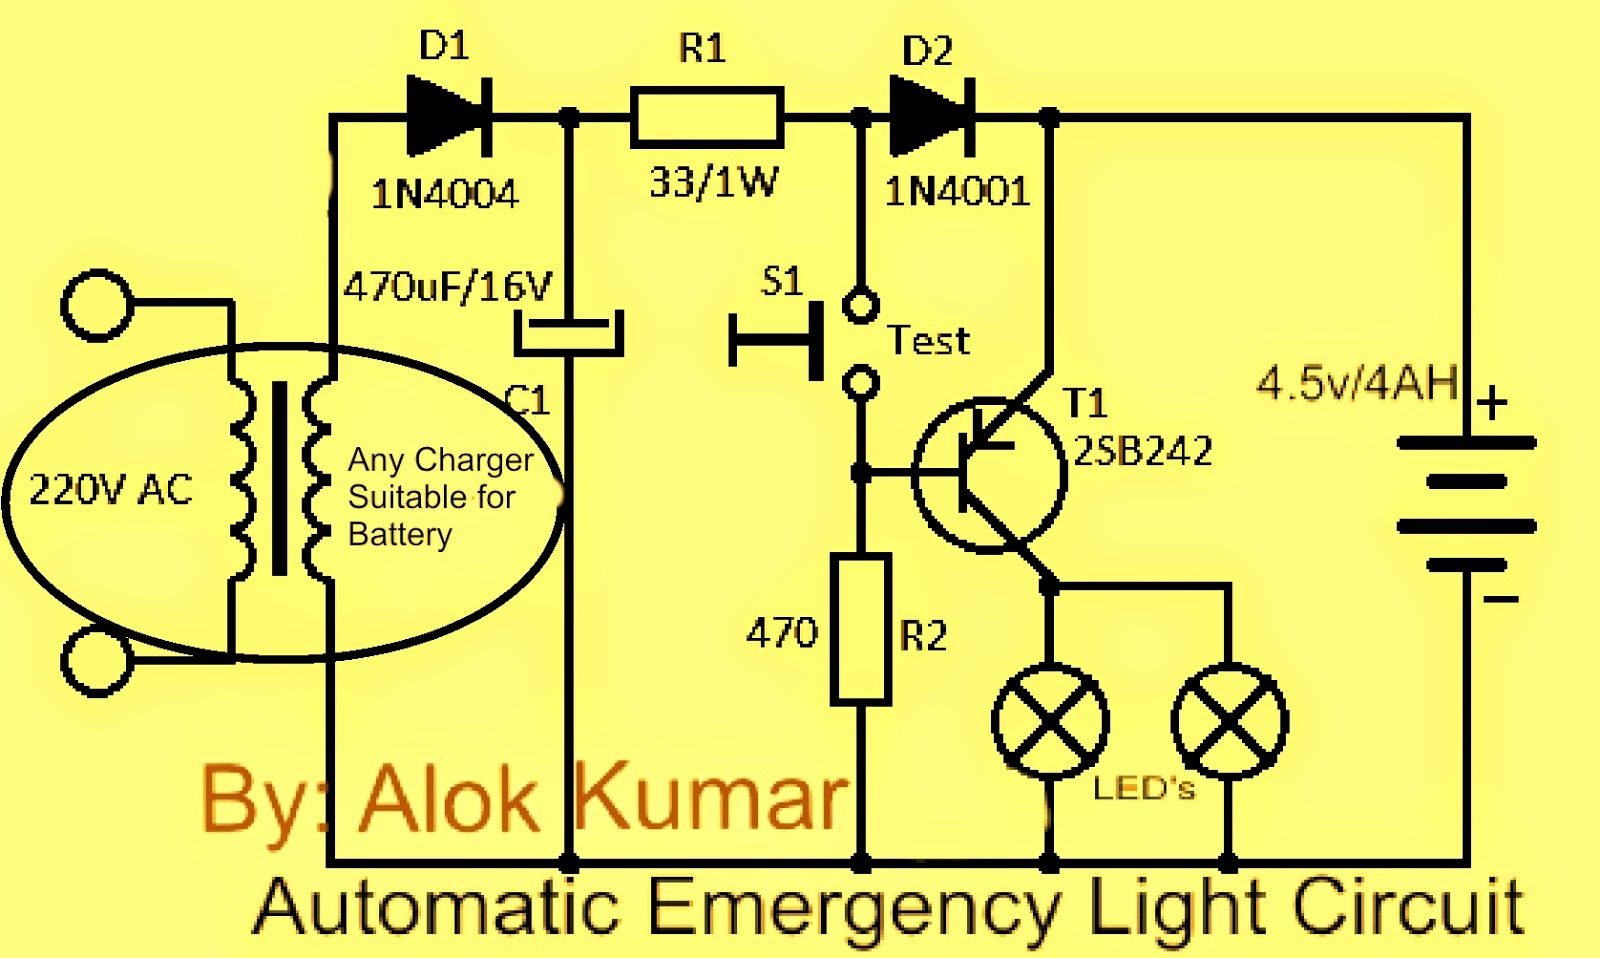 Emergency Light Circuit Lighting Wiring Diagram Simple Nicad Battery Charger By Little Part Eleccircuit Electronic Circuits Power Supply Led Drivers Chargers Solar Automatic With